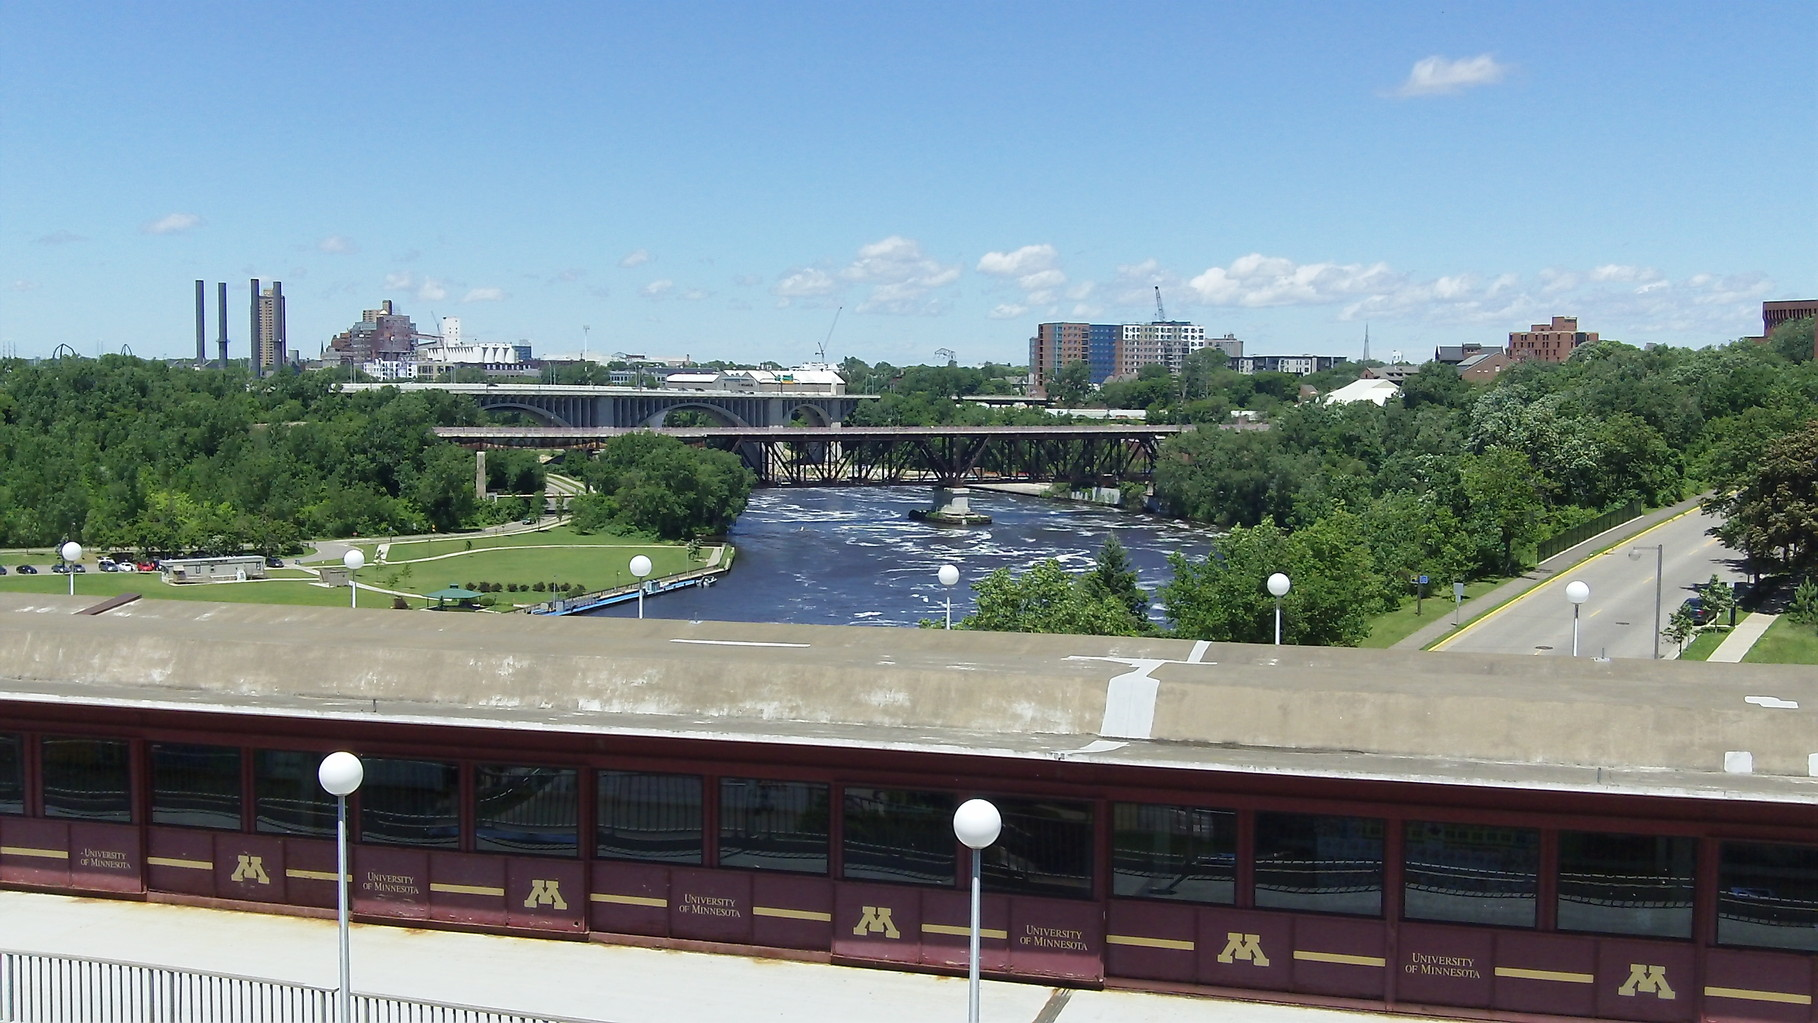 Univ. of Minnesota, Minneapolis campus bridge above the Mississippi River.